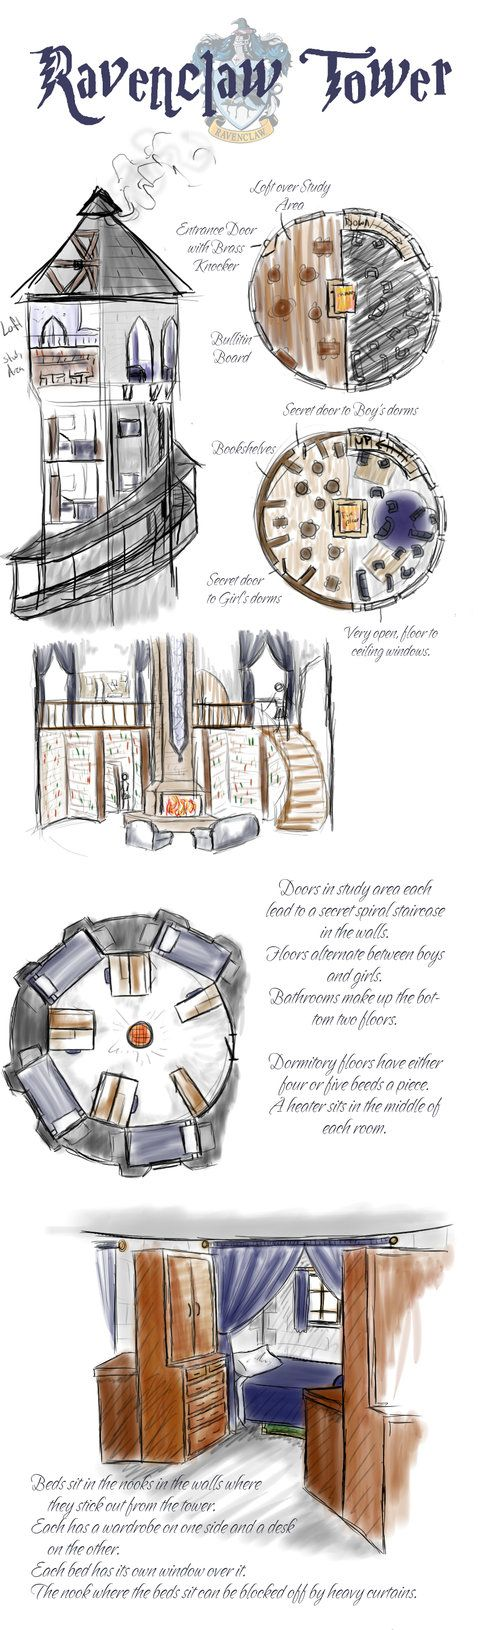 """Ravenclaw Tower by *Whisperwings """"Wit beyond measure is man's greatest treasure"""" I am proud to be a Ravenclaw!"""